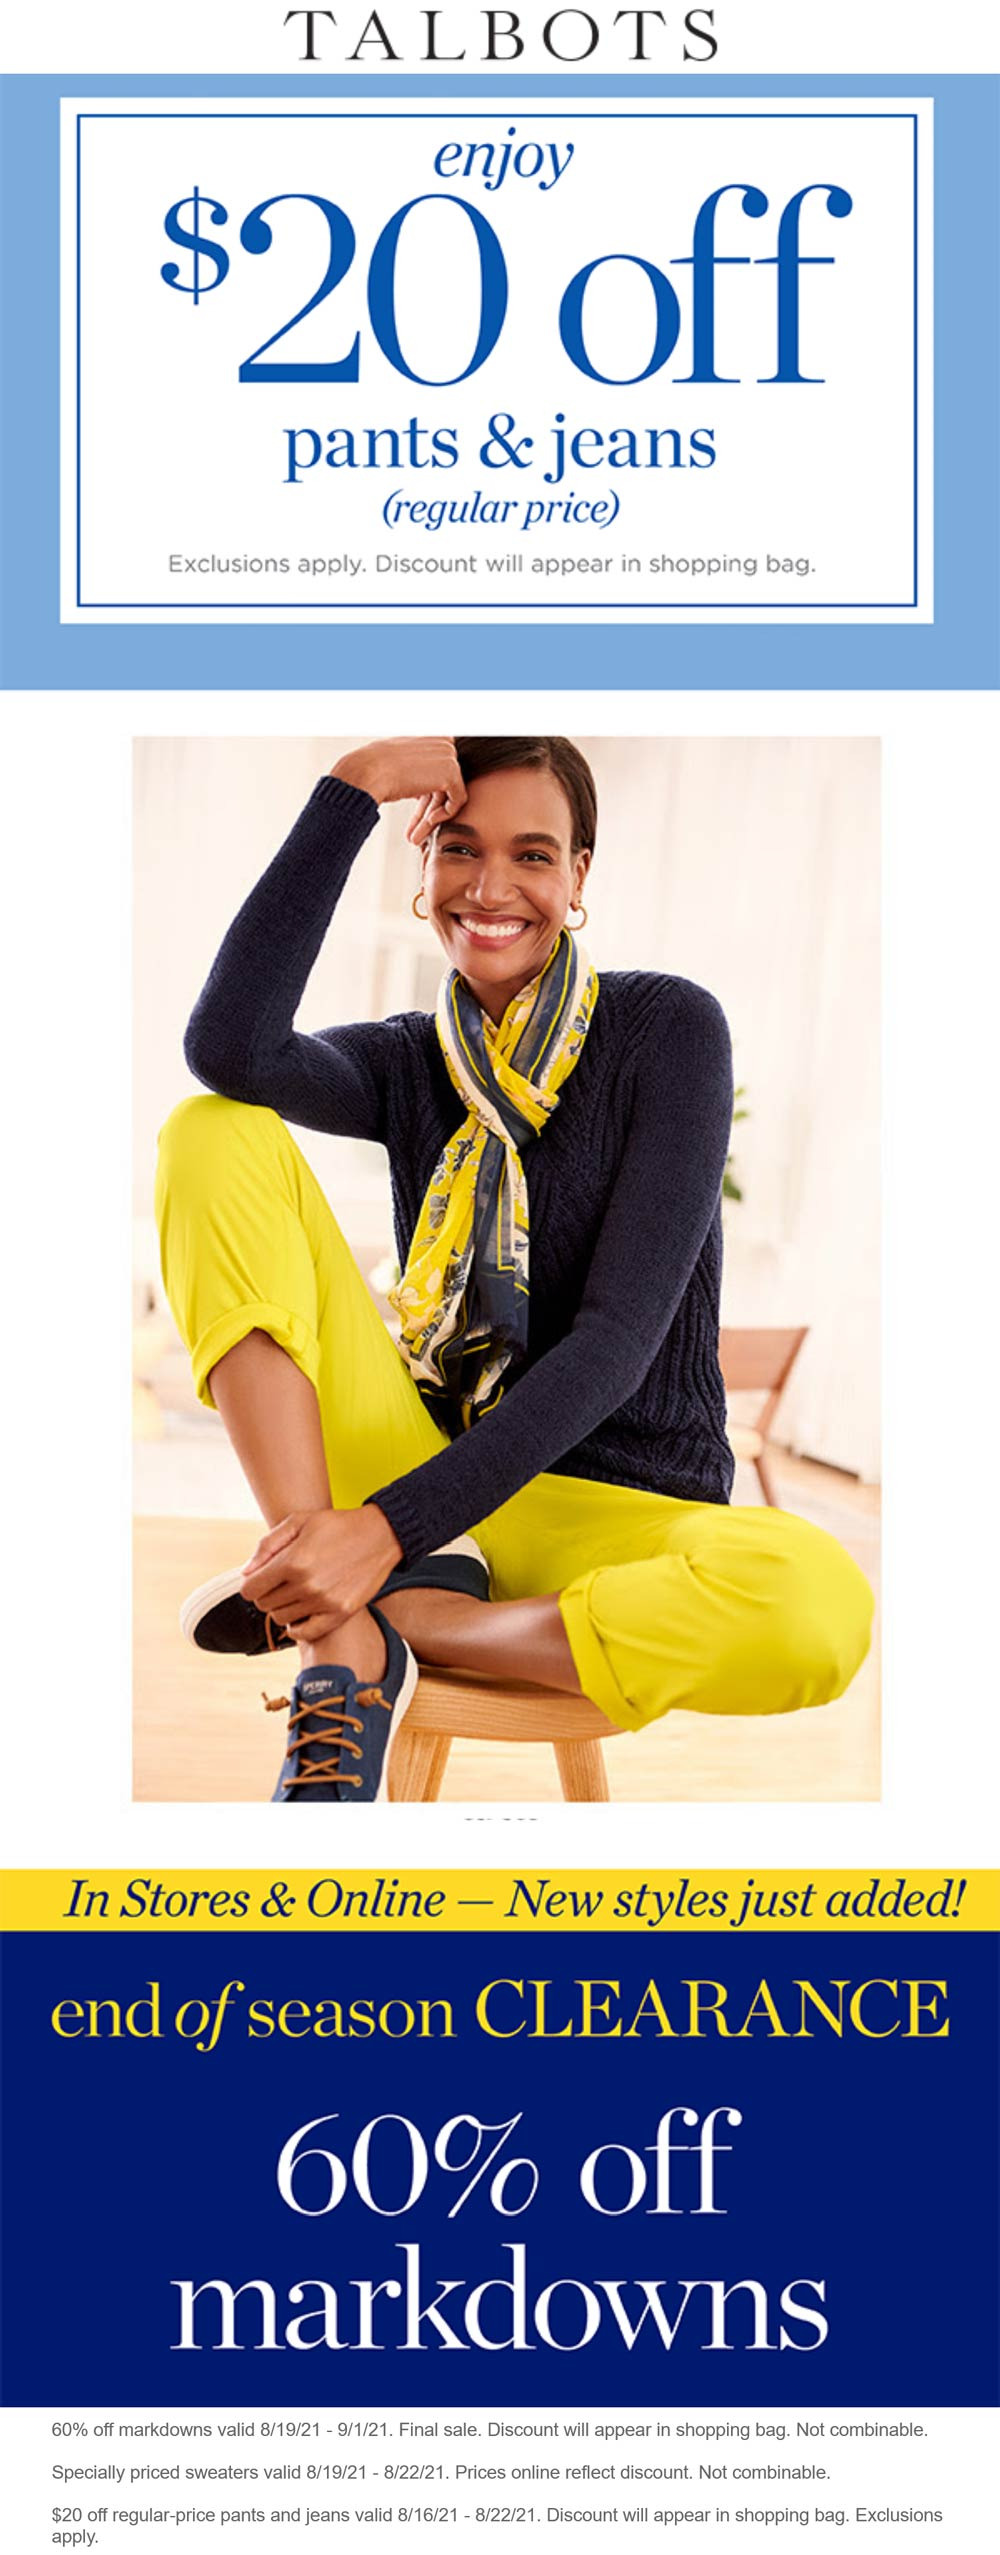 Talbots stores Coupon  $20 off pants & jeans at Talbots, ditto online #talbots